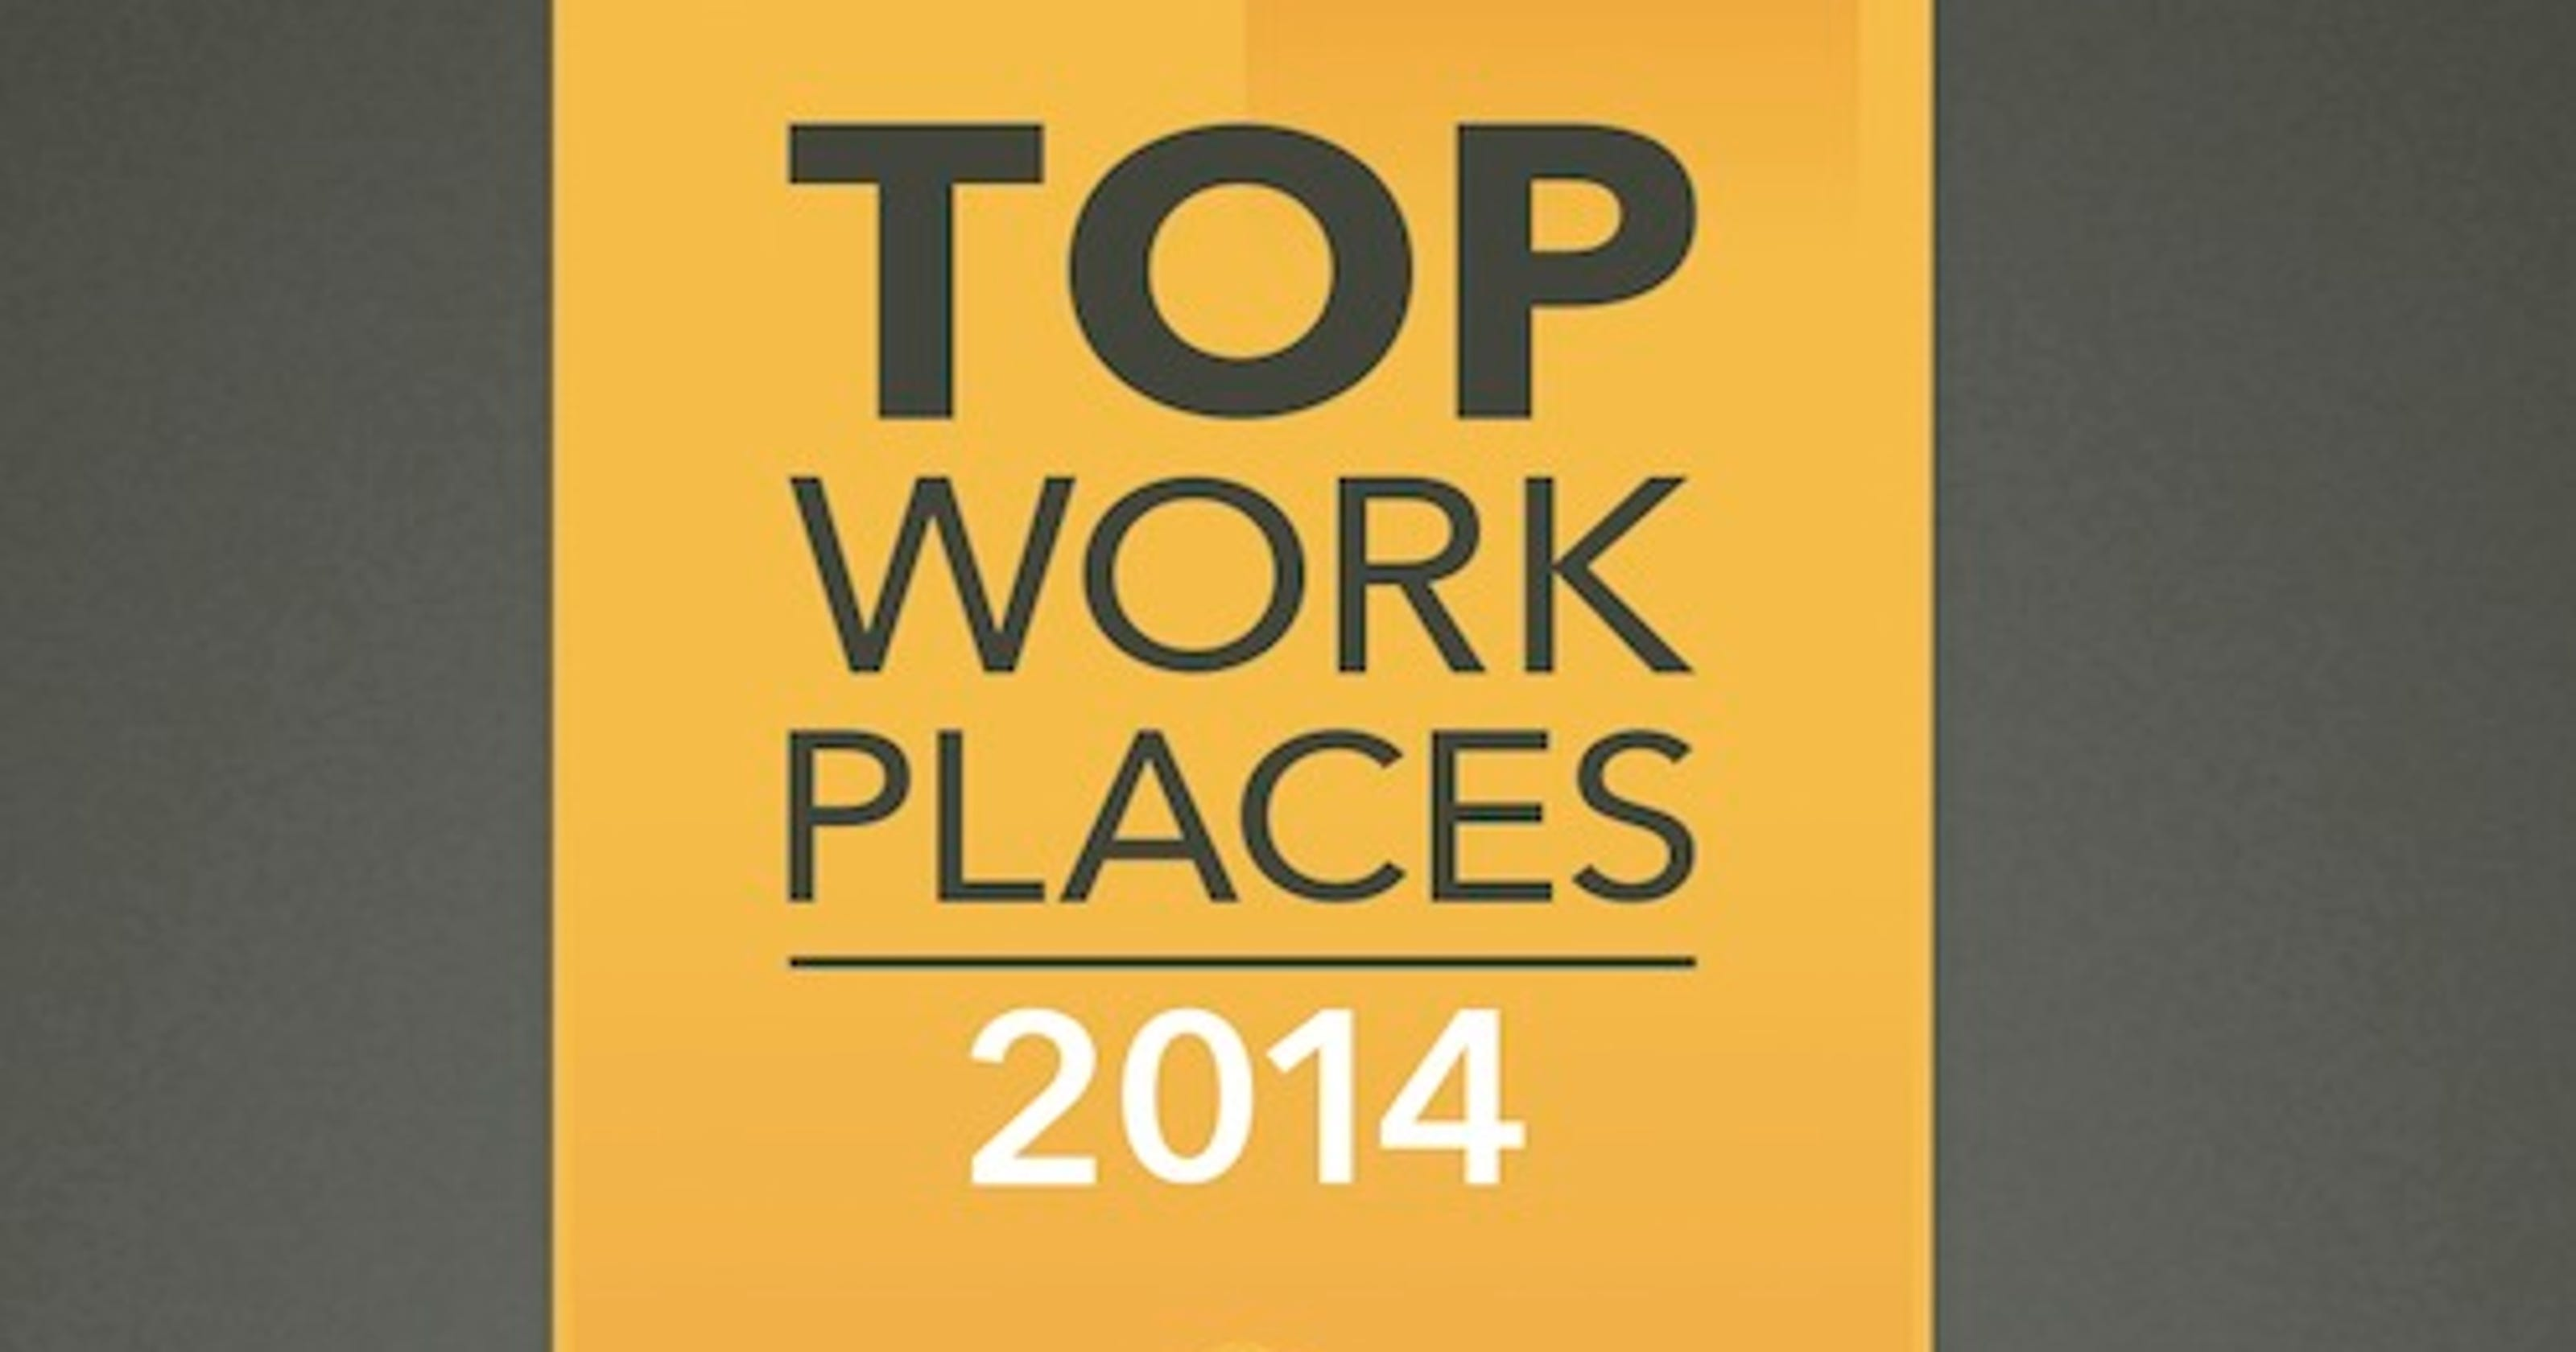 Check out Nashville's Top Workplaces for 2014